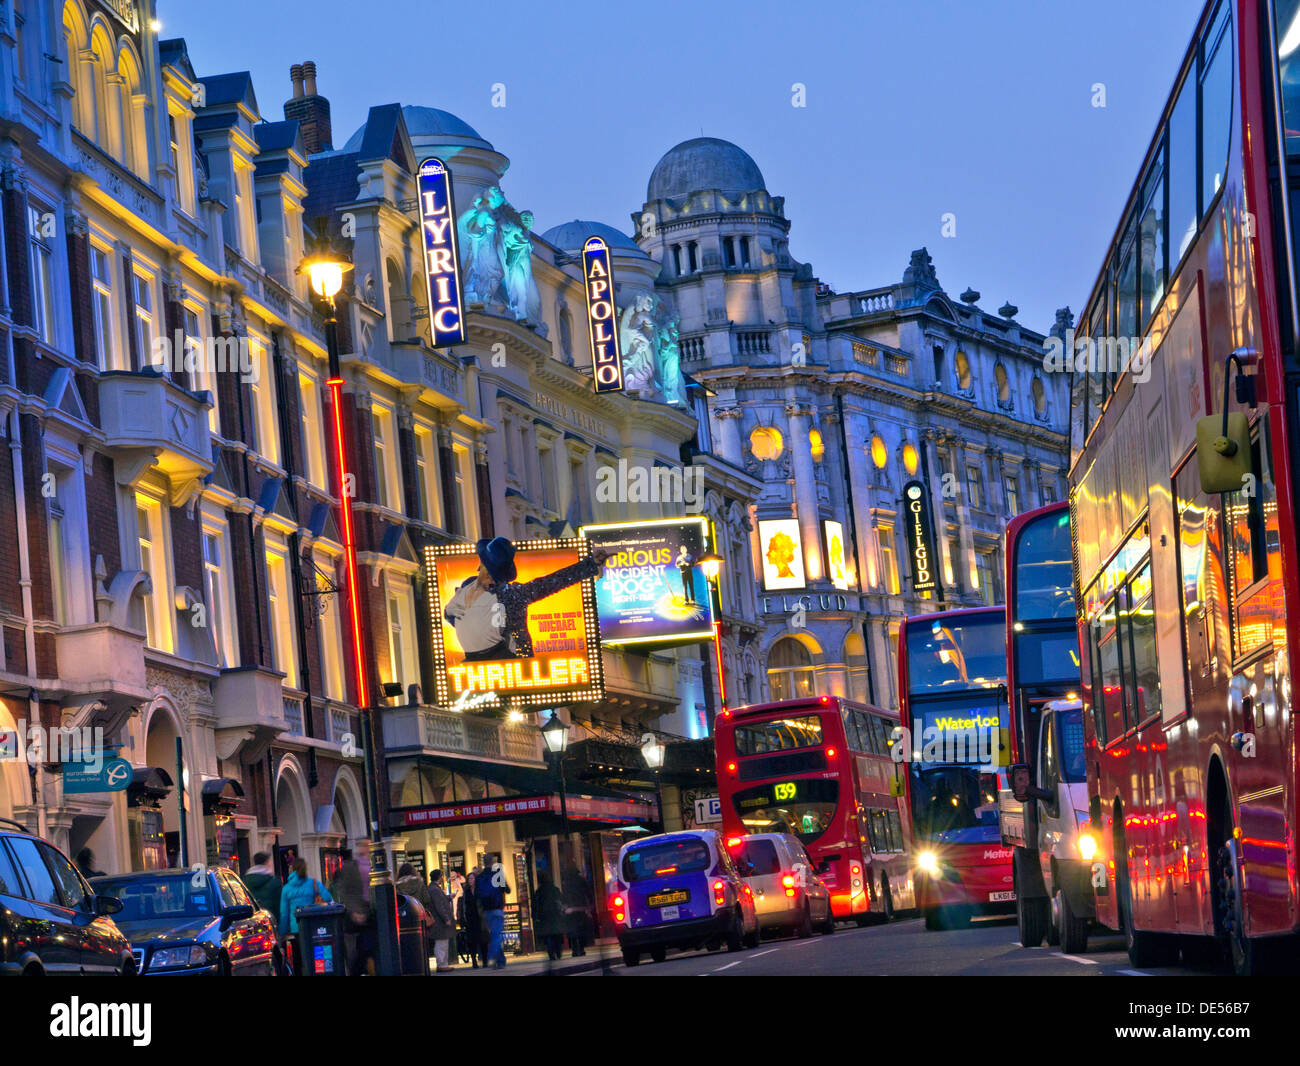 London Theatreland entertainment capital busy with people red buses and taxis in Shaftesbury Avenue West End London UK - Stock Image